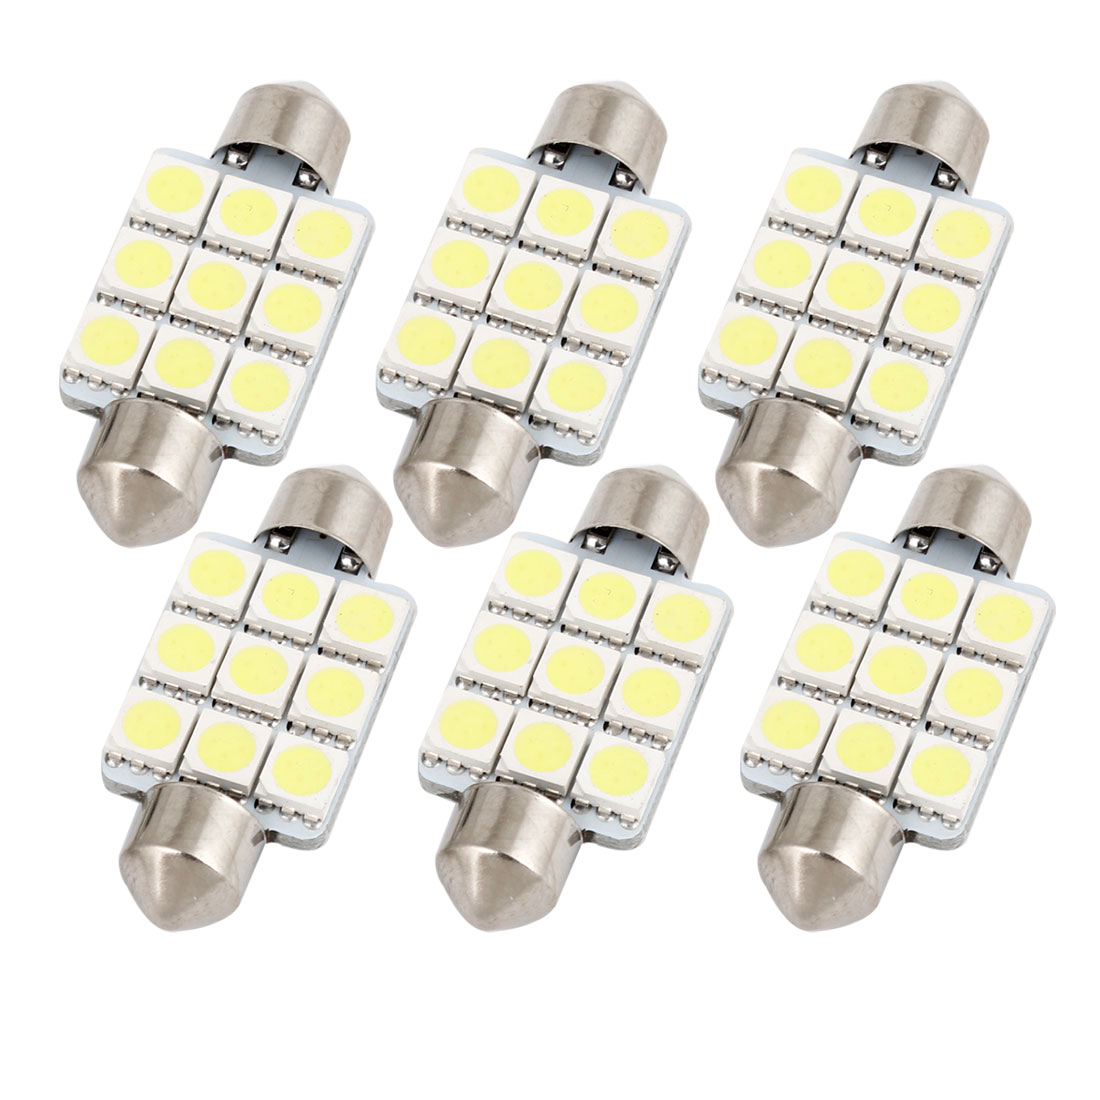 "6pcs White 9-SMD 5050 LED 1.54"" 39mm Festoon Dome Lights 6423 6461 6418 Internal"